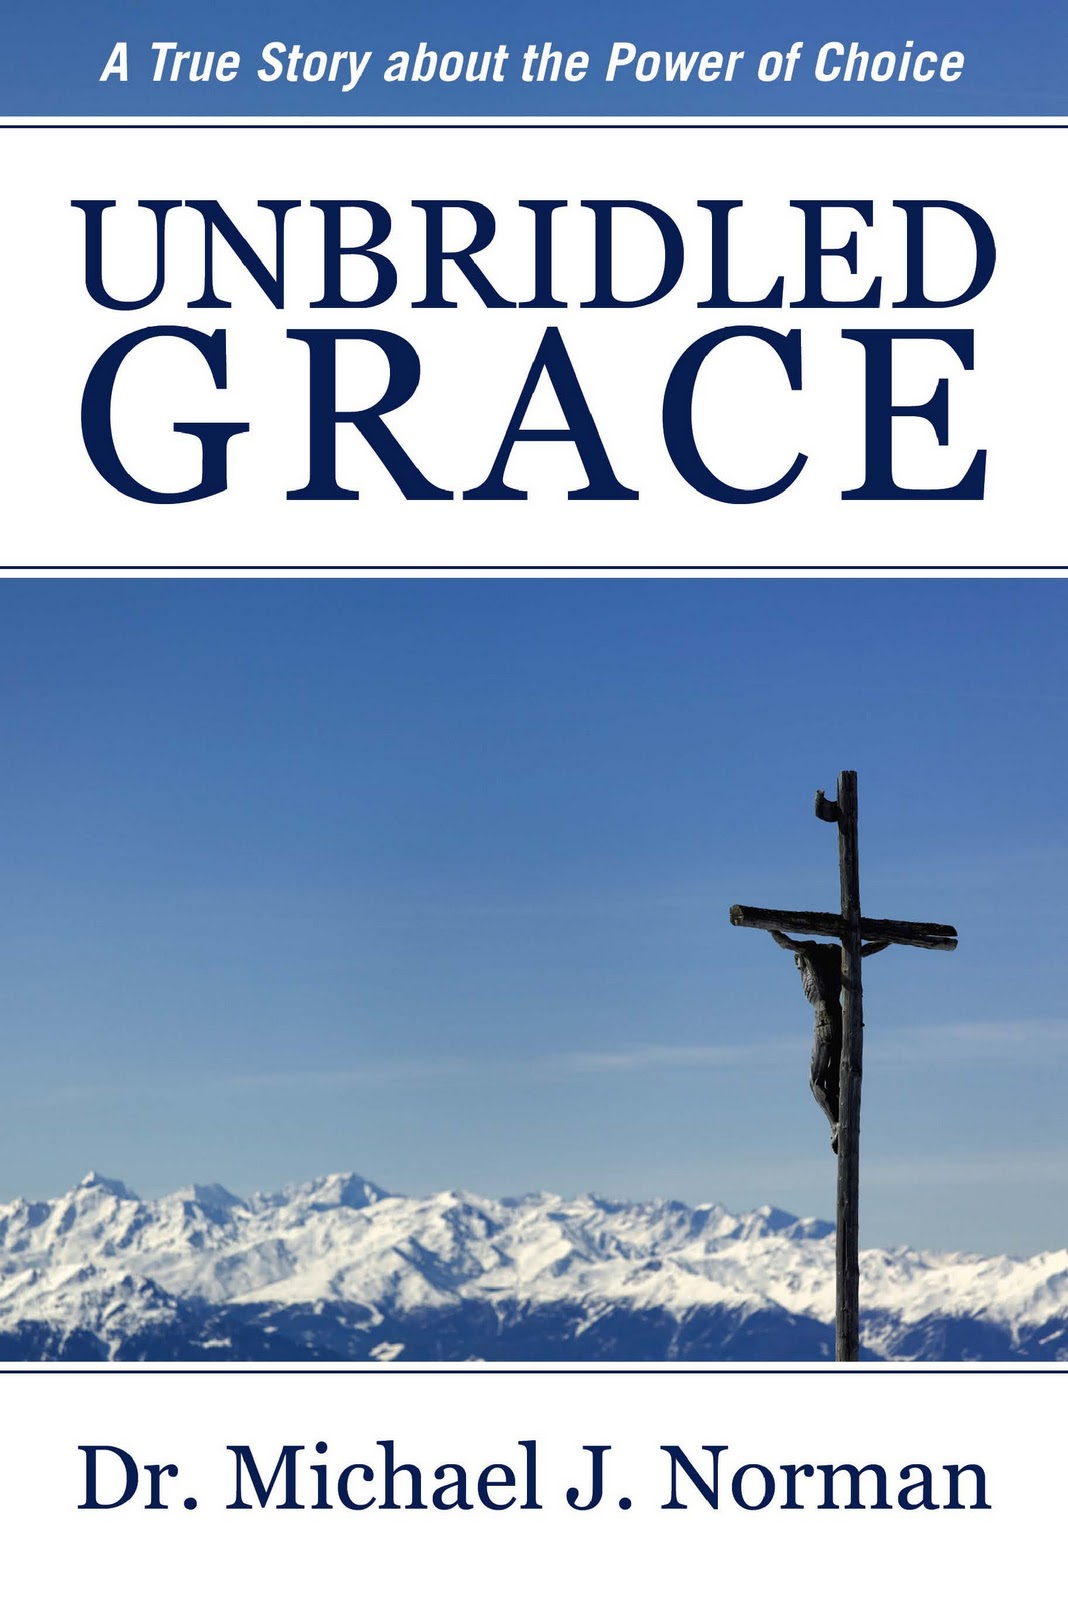 Unbridled_Grace_cover